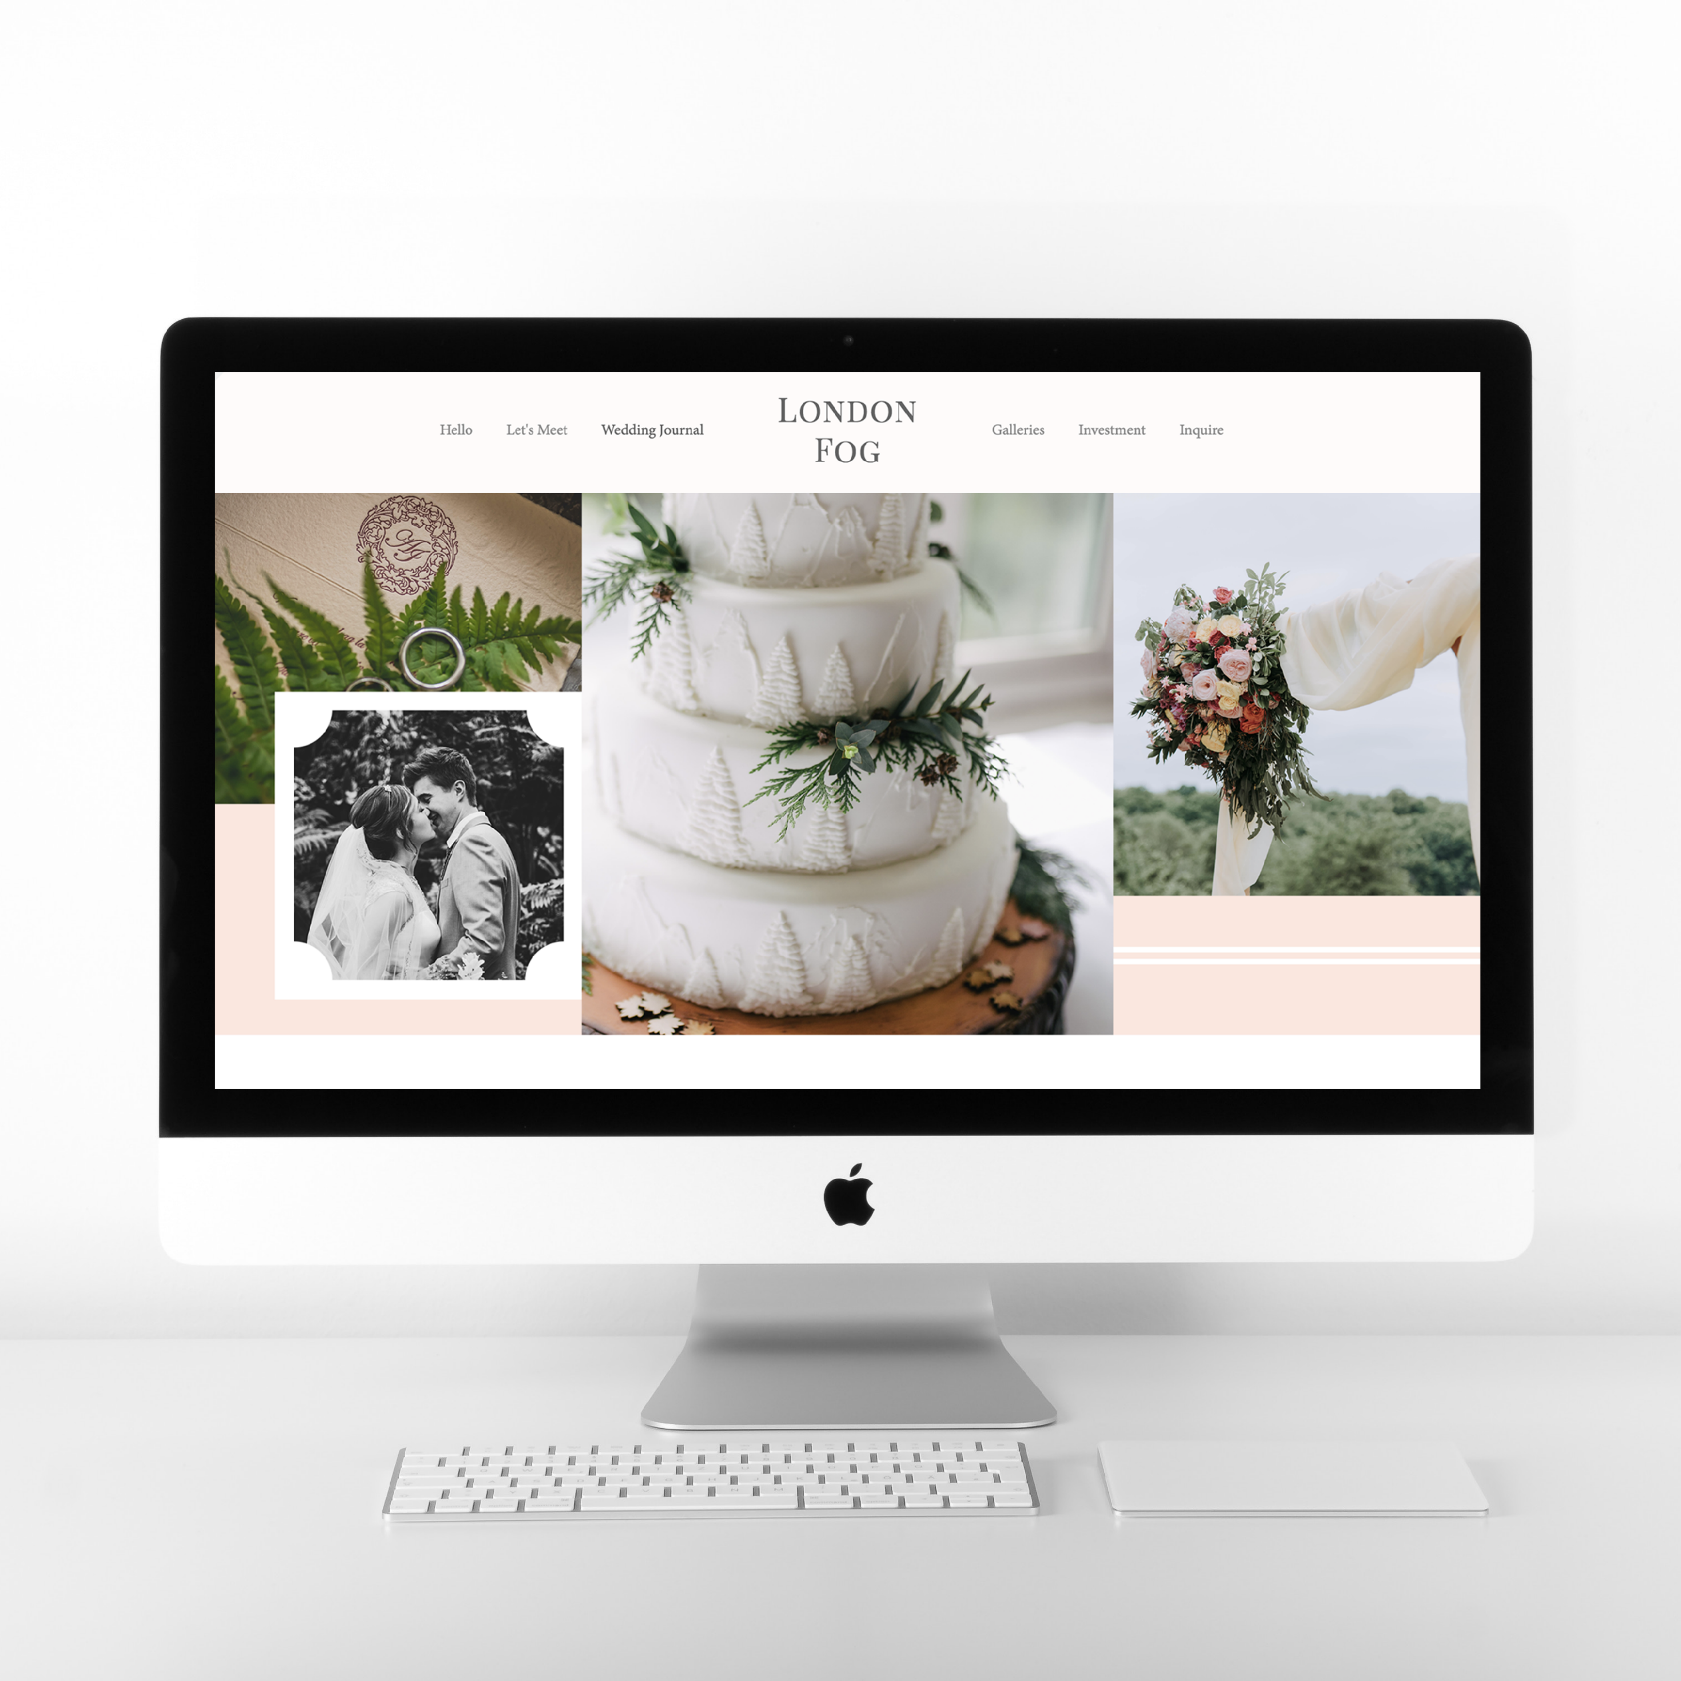 Alexis the Greek is a web designer and photographer for creative professionals